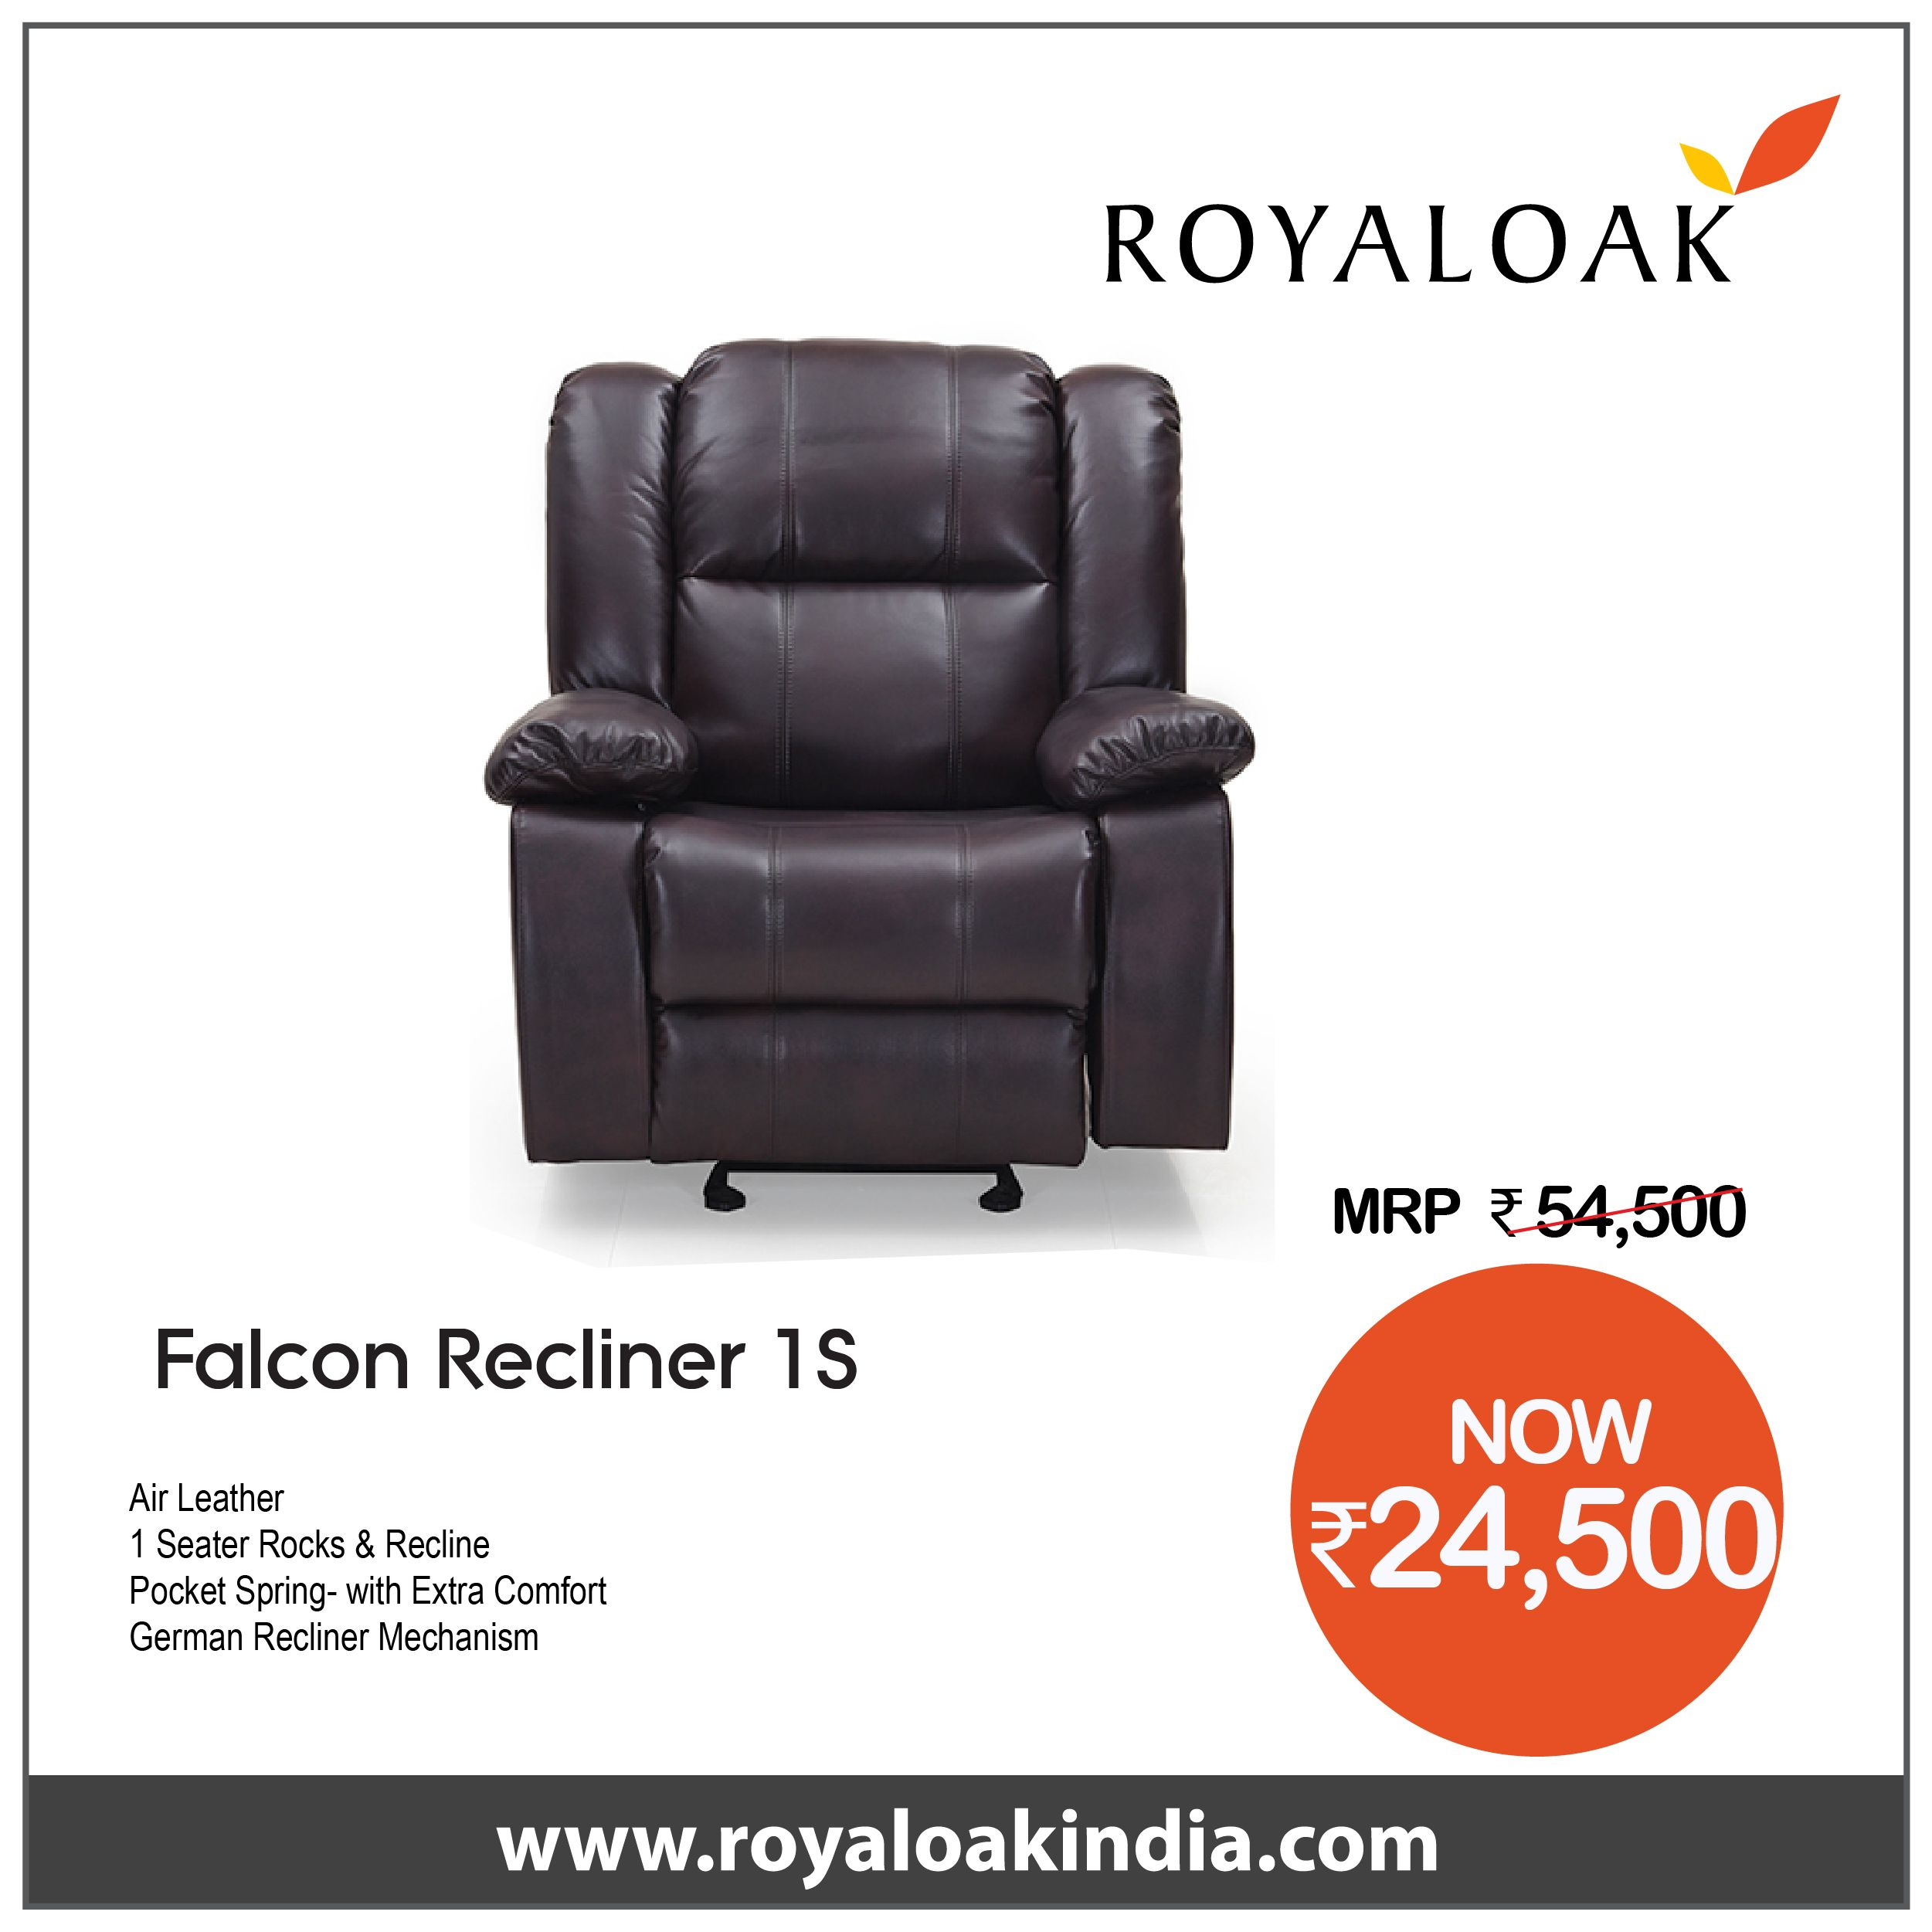 Pin By Royaloak Furniture On Royaloak Recliner Sets Recliner Leather Fabric Stuff To Buy